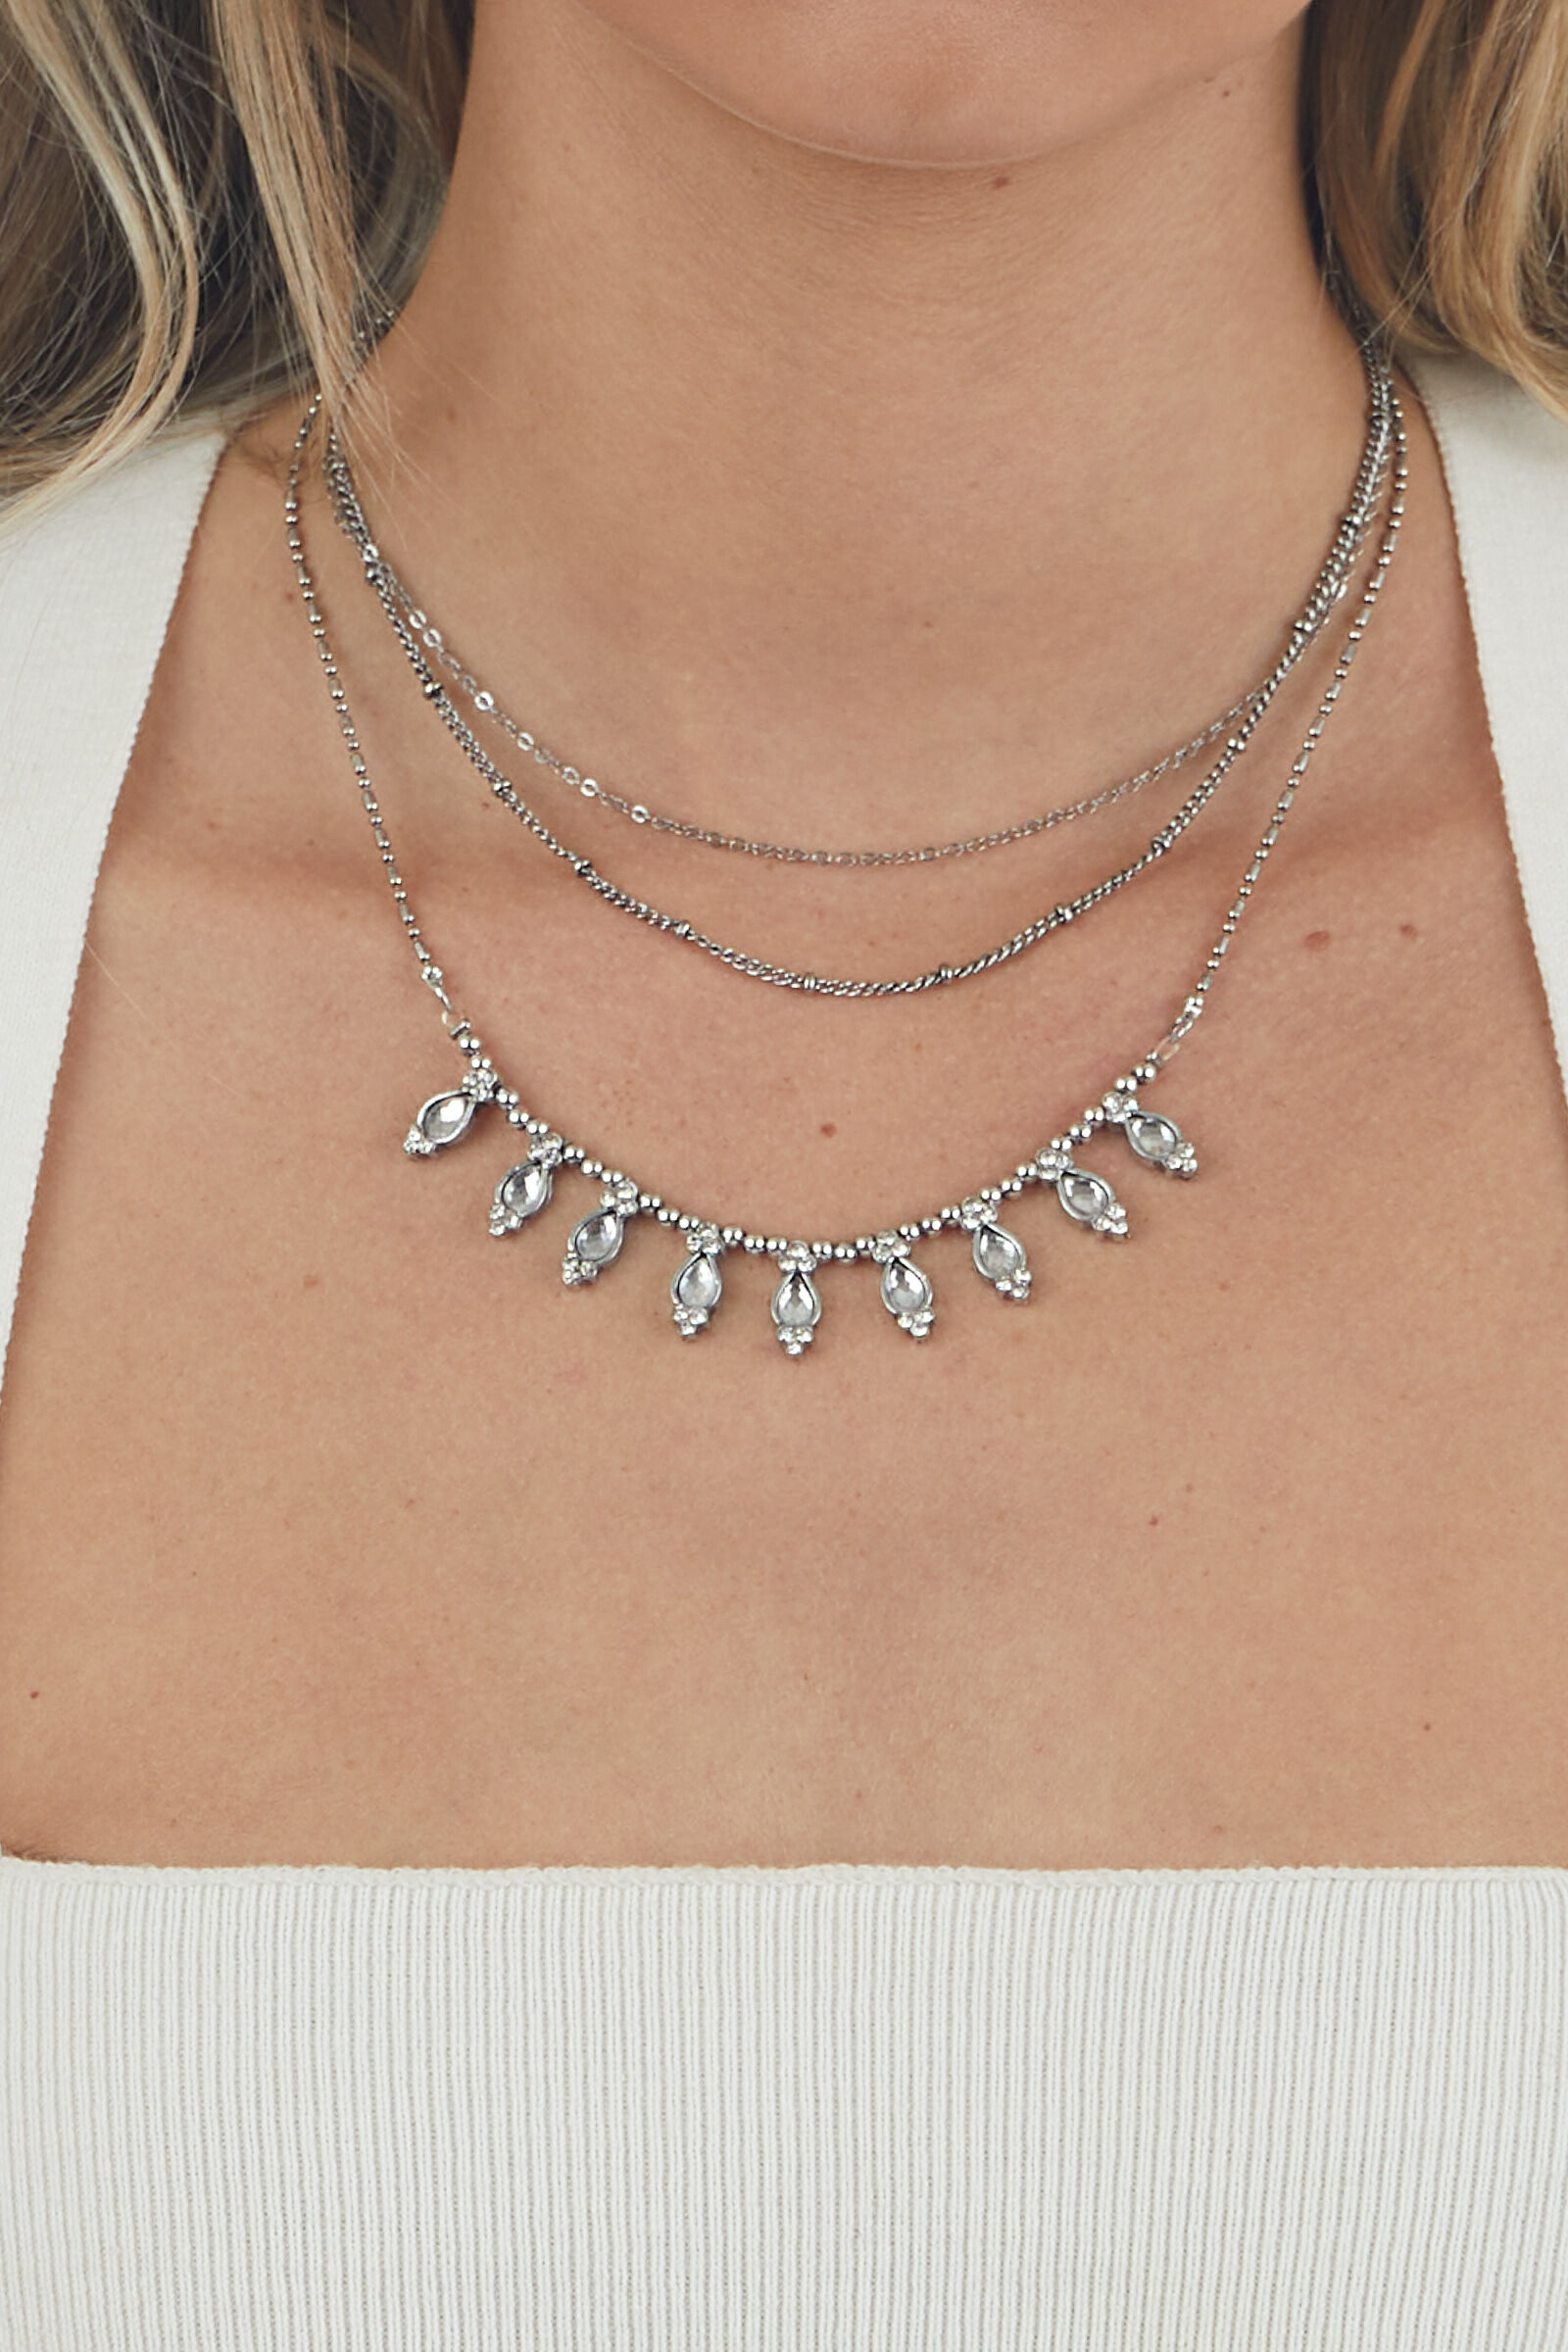 Silver Layered Necklace with Teardrop Charms